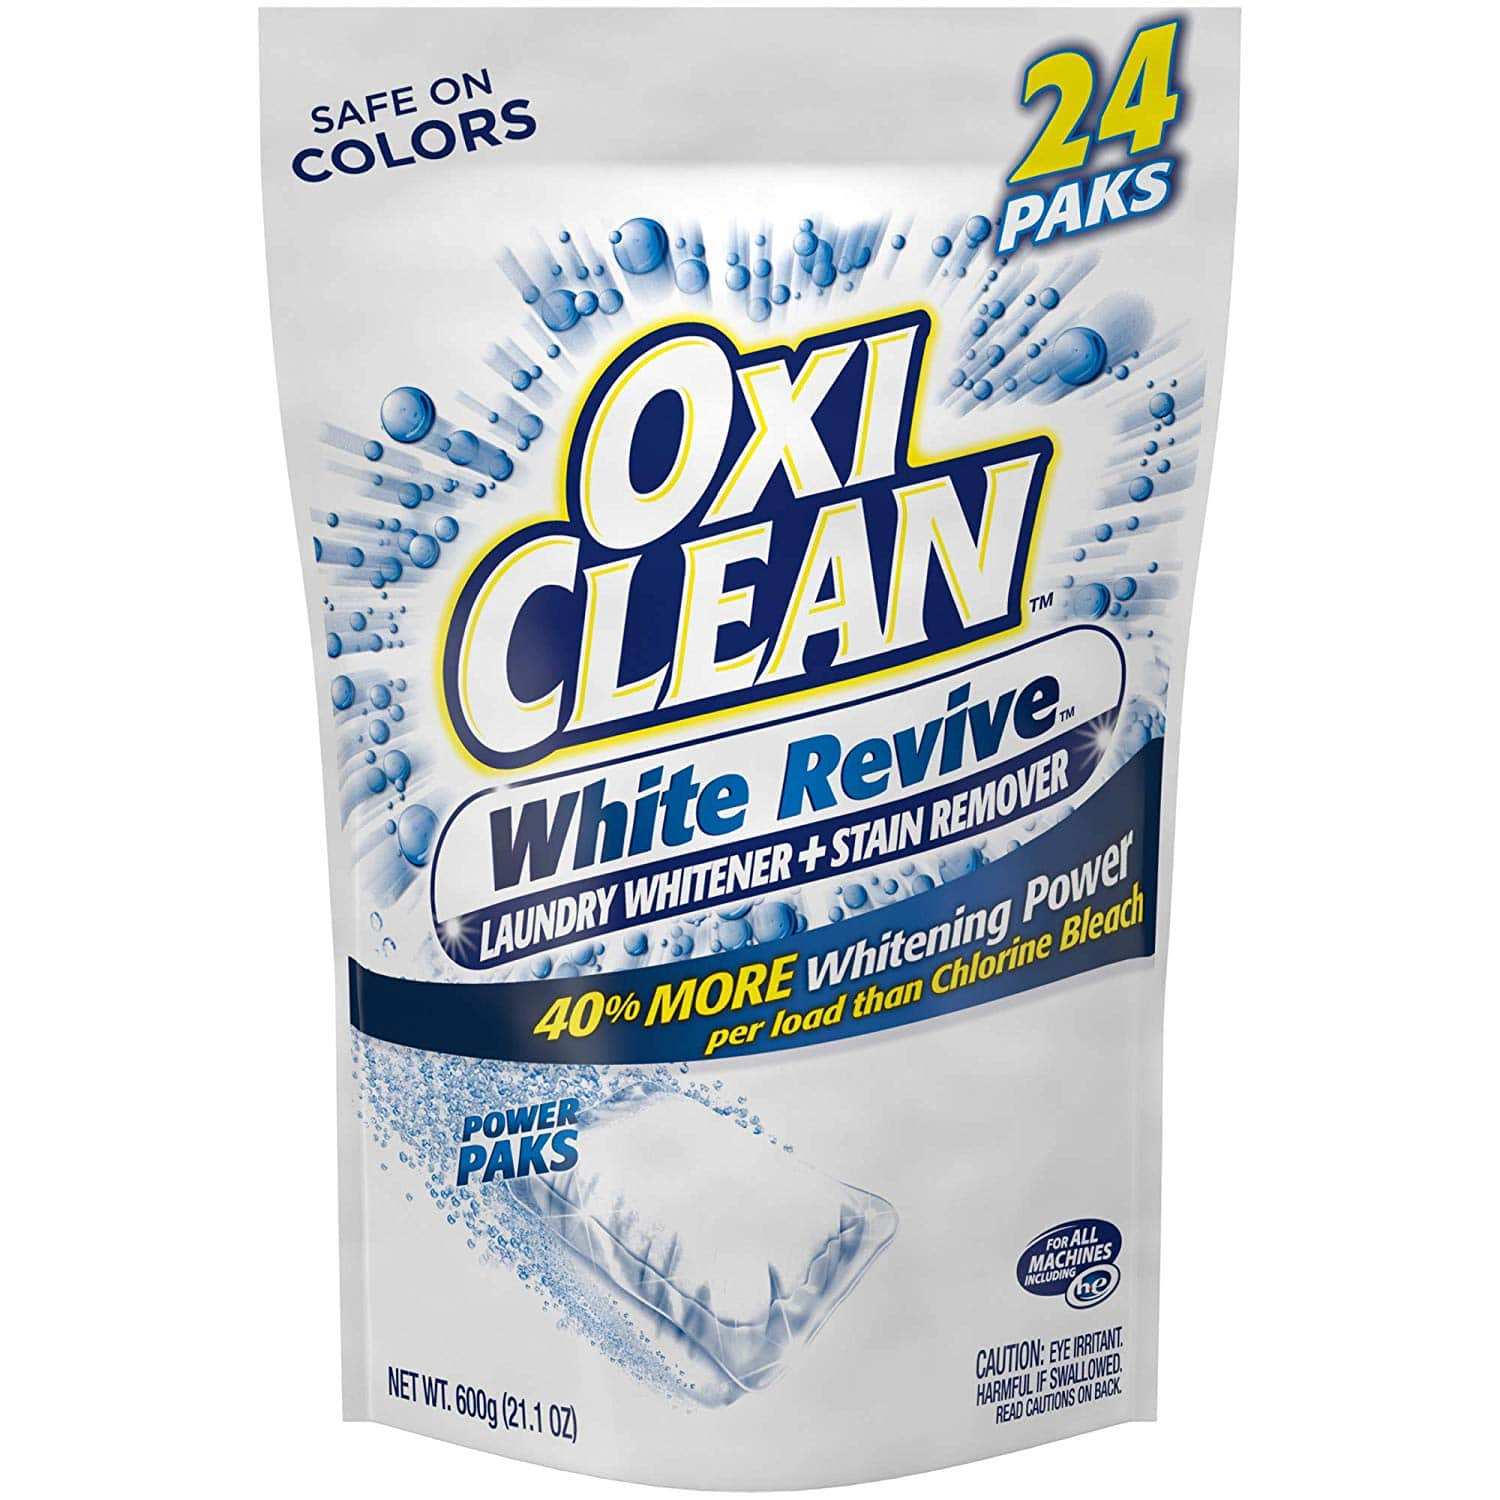 24-Count OxiClean White Revive Laundry Stain Remover Power Paks $3.98 or Less w/ S&S + Free Shipping ~ Amazon